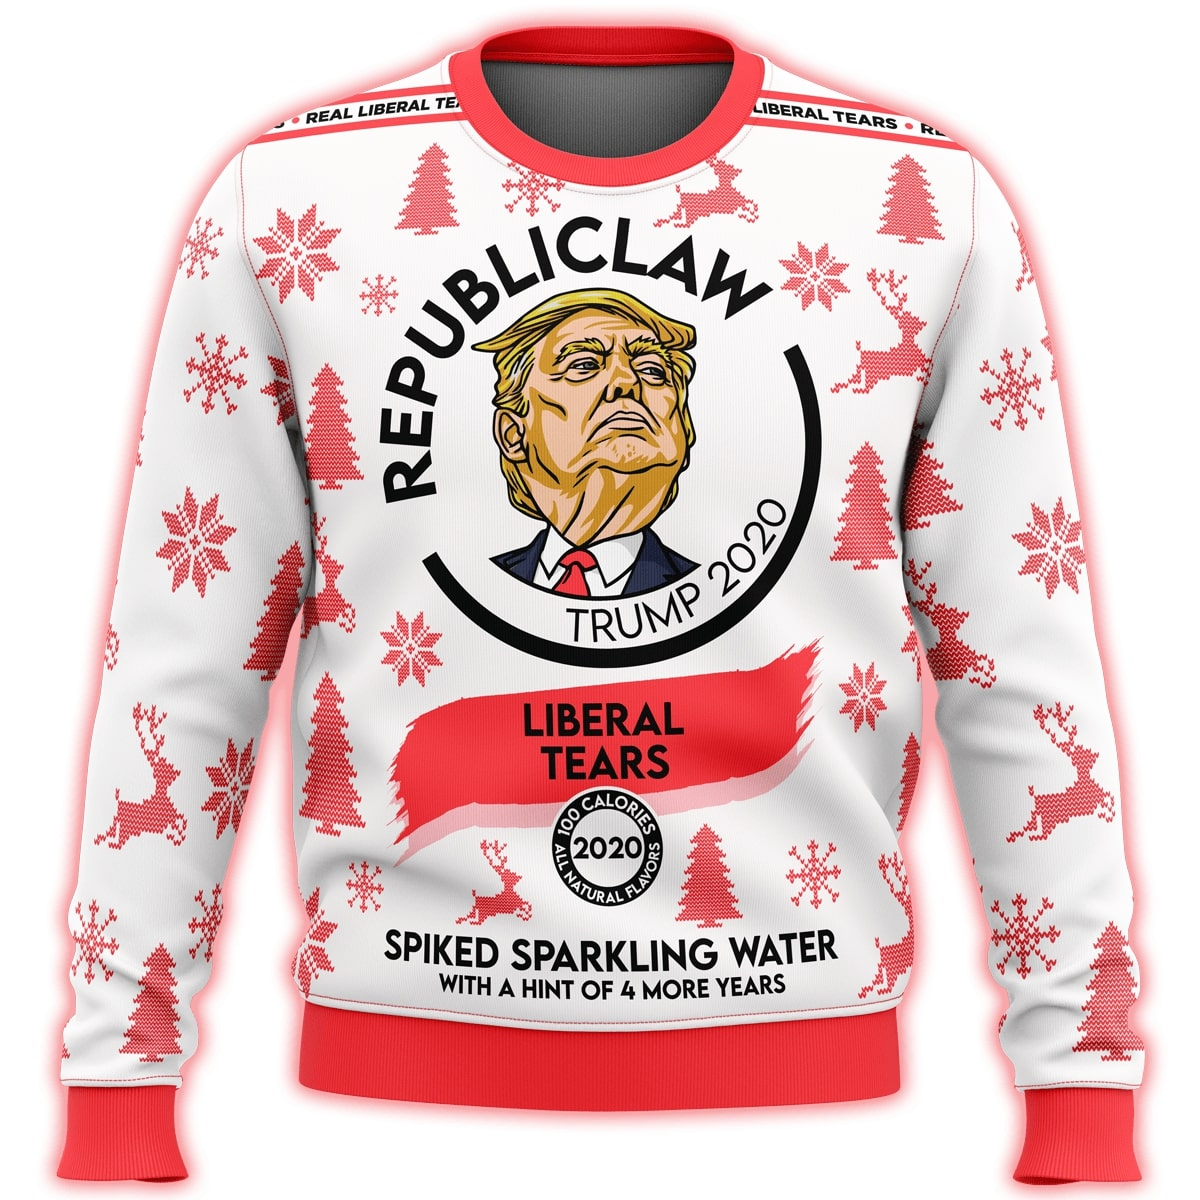 republiclaw liberal tears all over print ugly christmas sweater 3